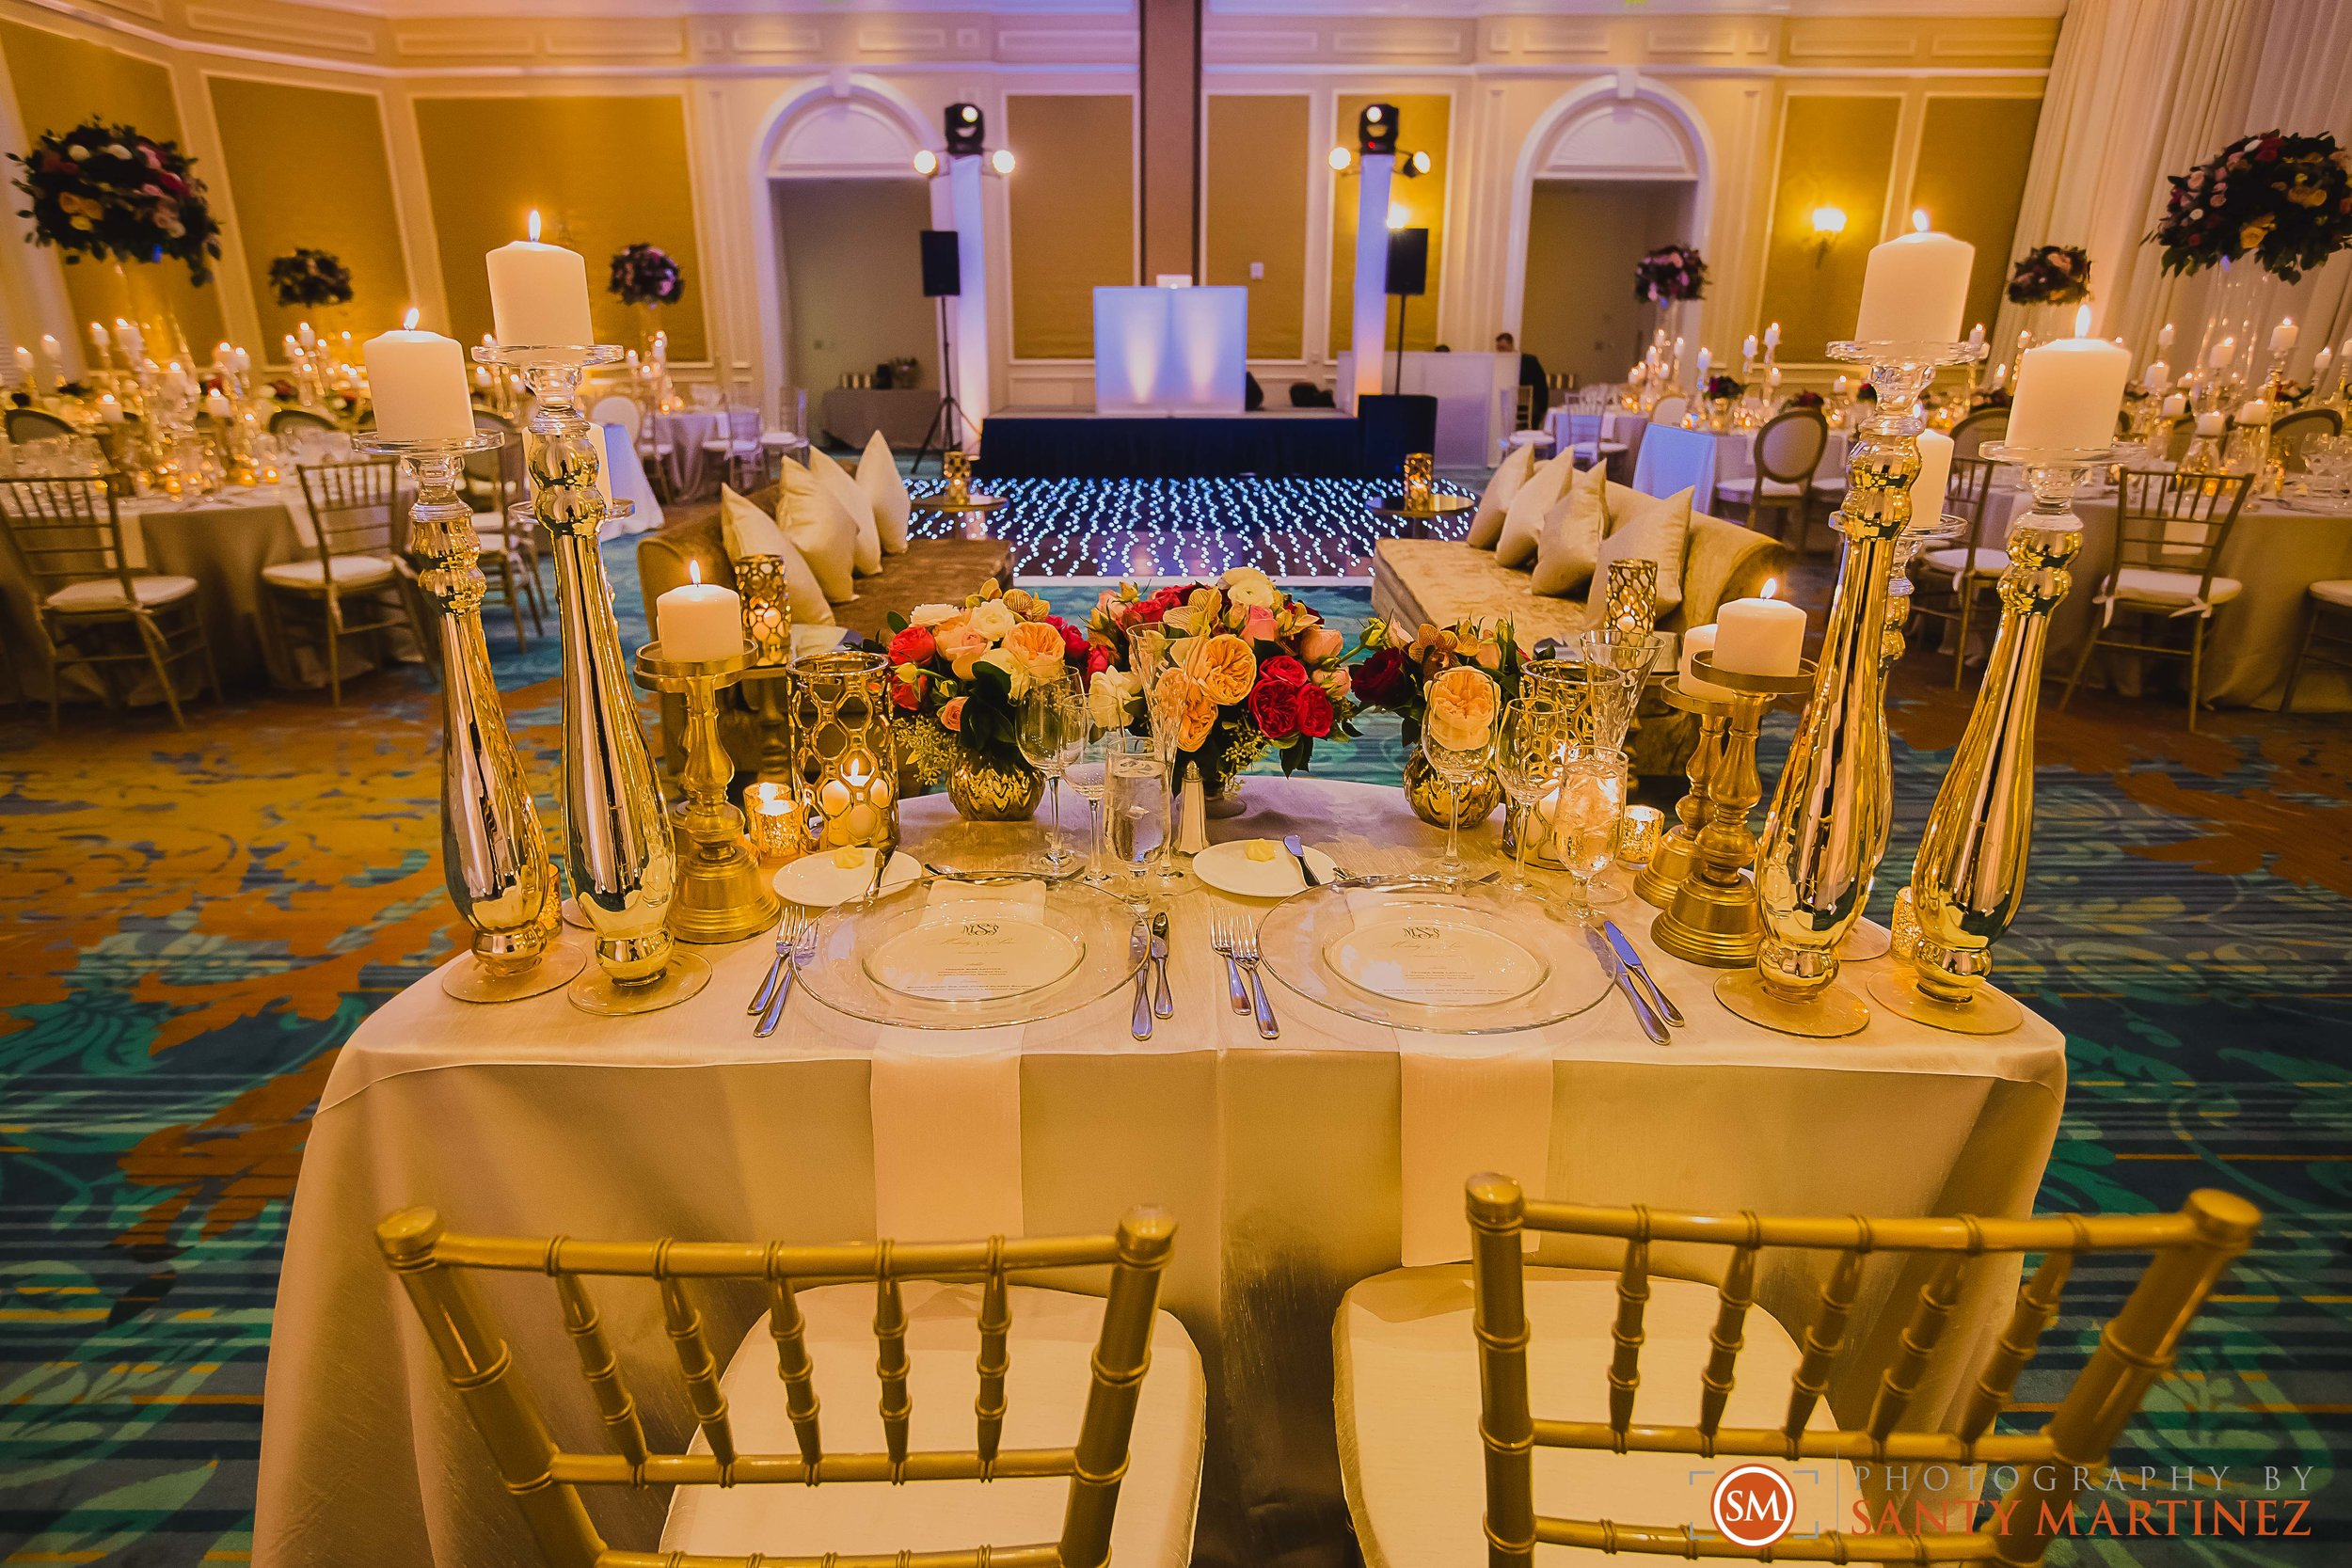 Wedding Ritz Carlton Coconut Grove - Santy Martinez-31.jpg